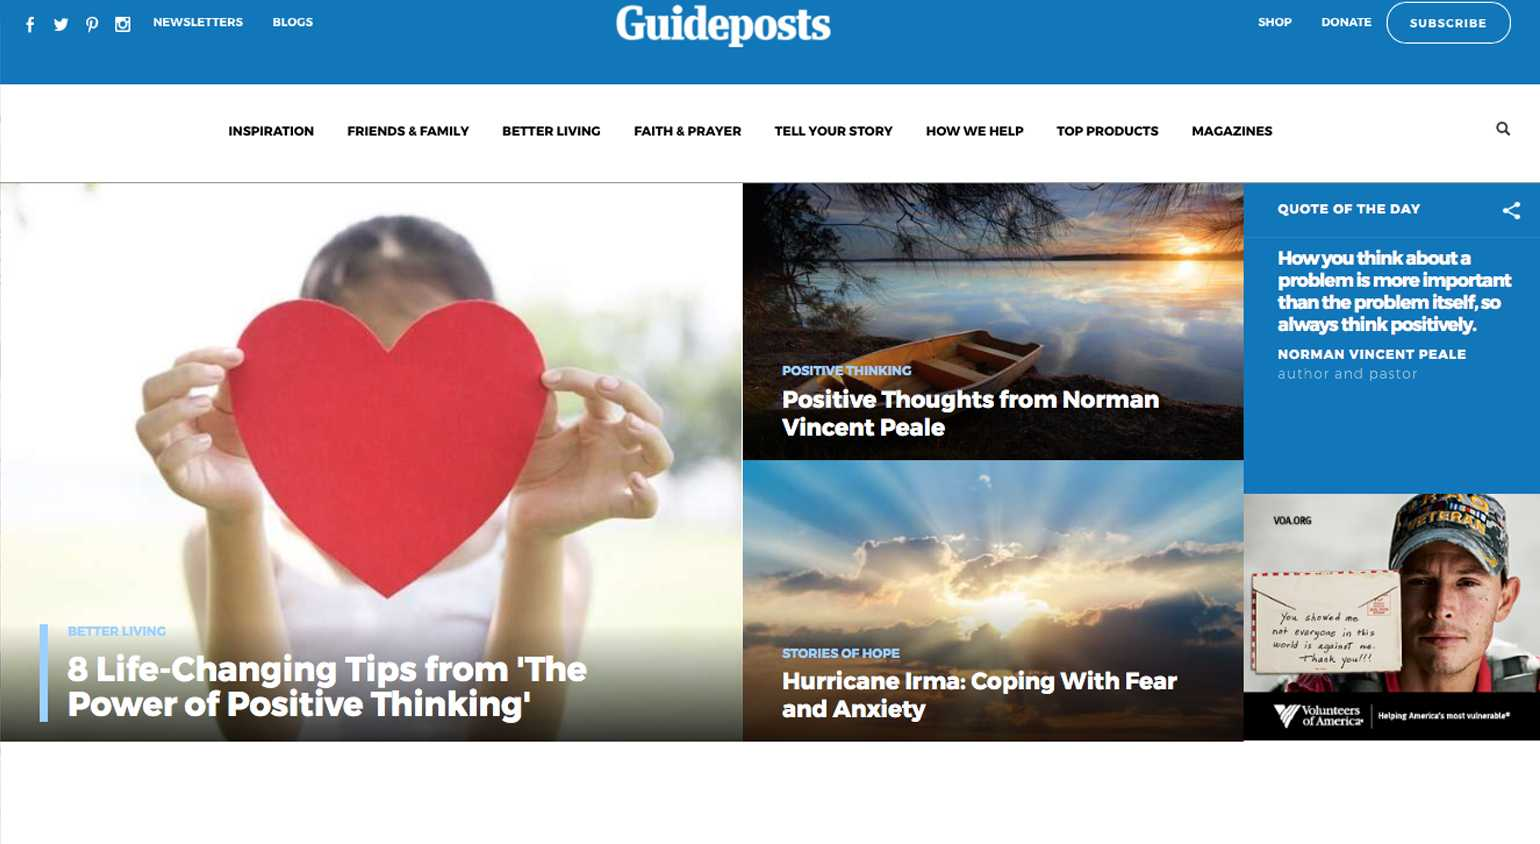 Guideposts.org Wins National Award